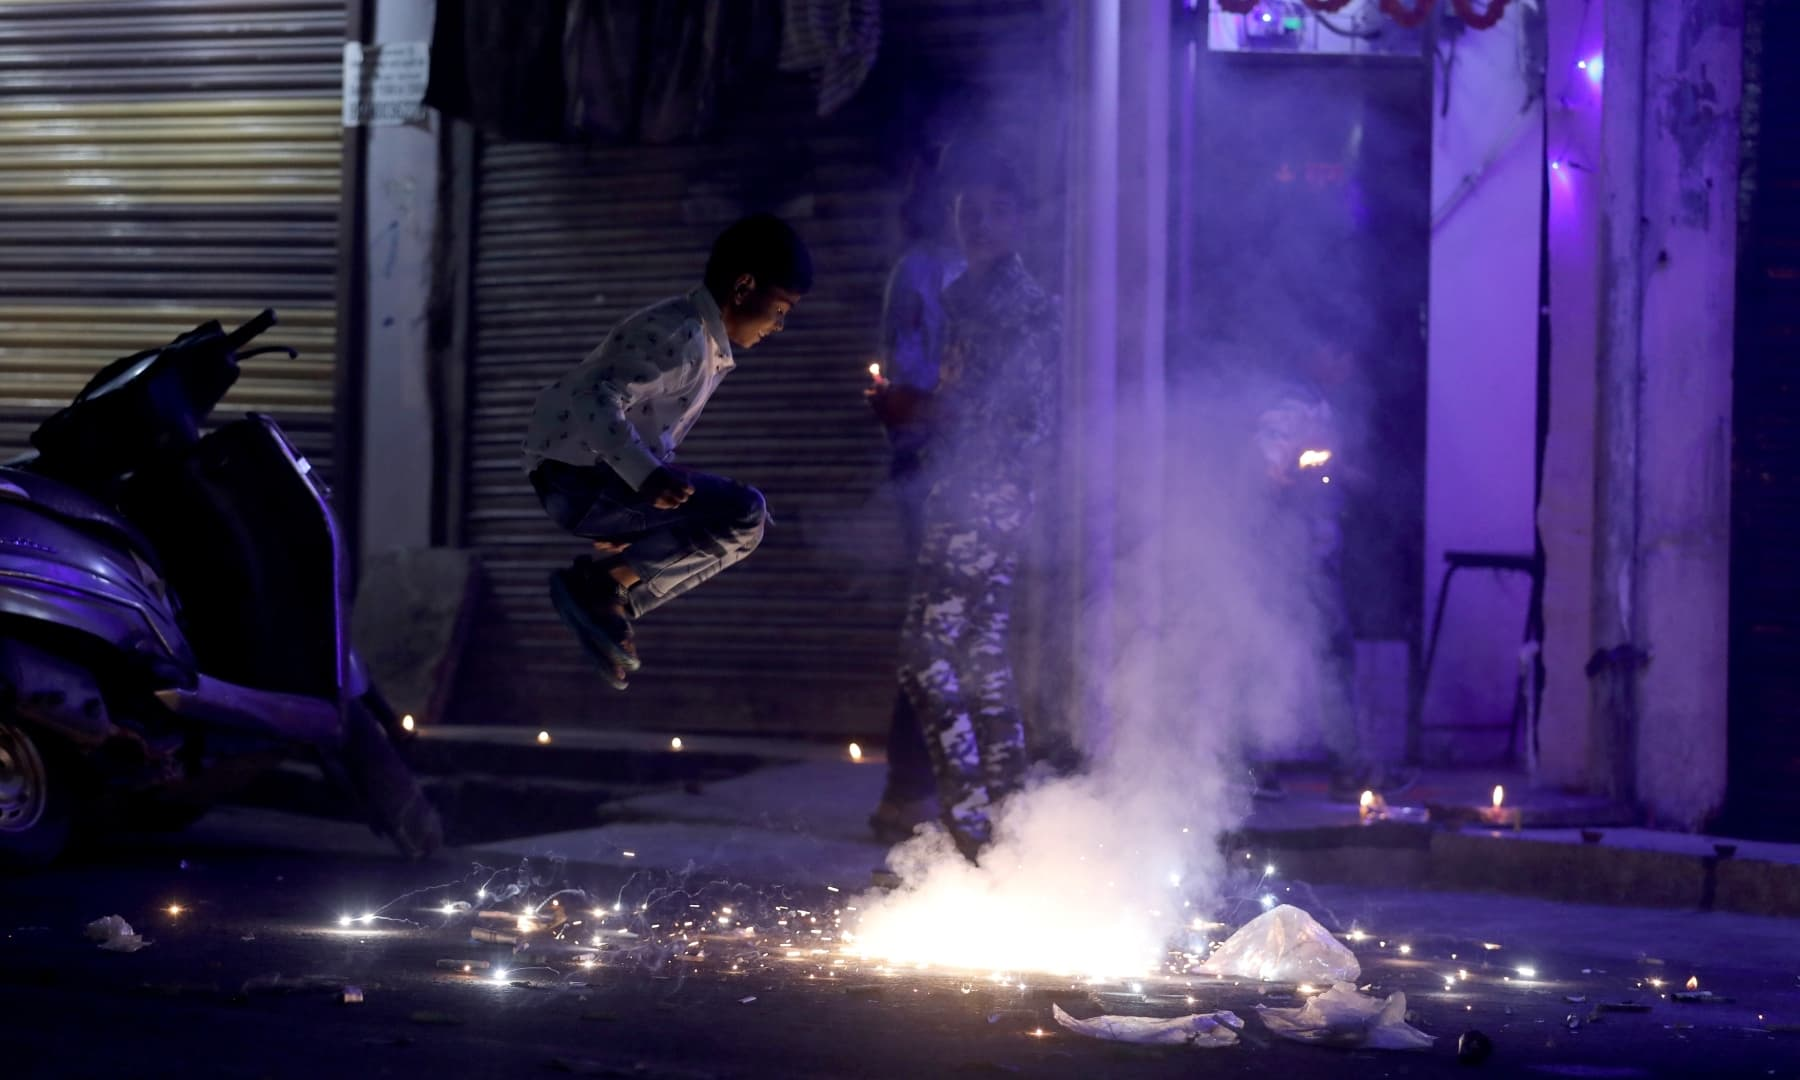 People watch as firecrackers burn during Diwali, the Hindu festival of lights, in New Delhi, India, November 14. — Reuters